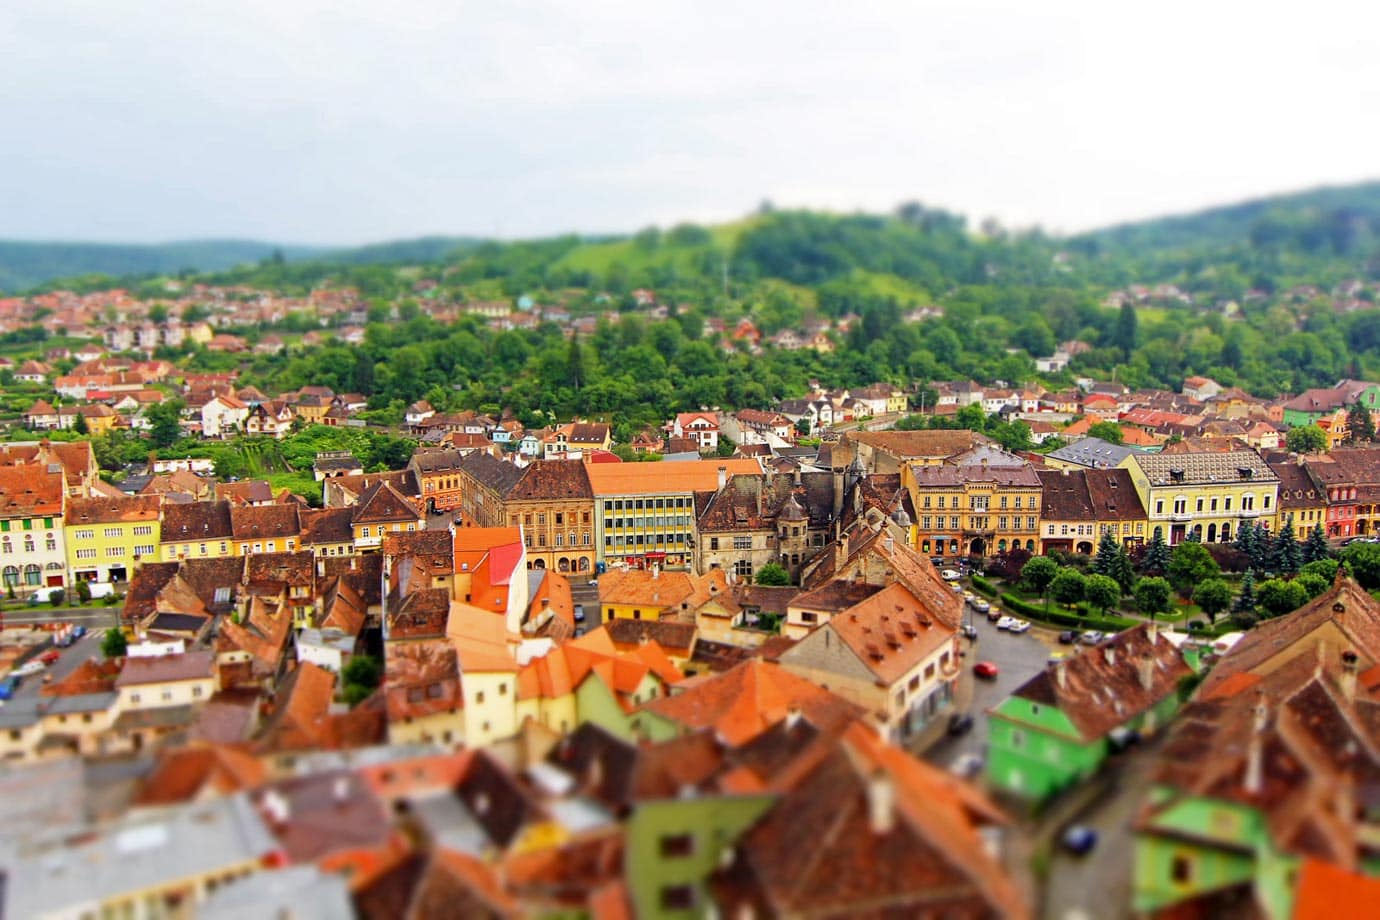 A view of Old Town from the Clock Tower in Sighisoara